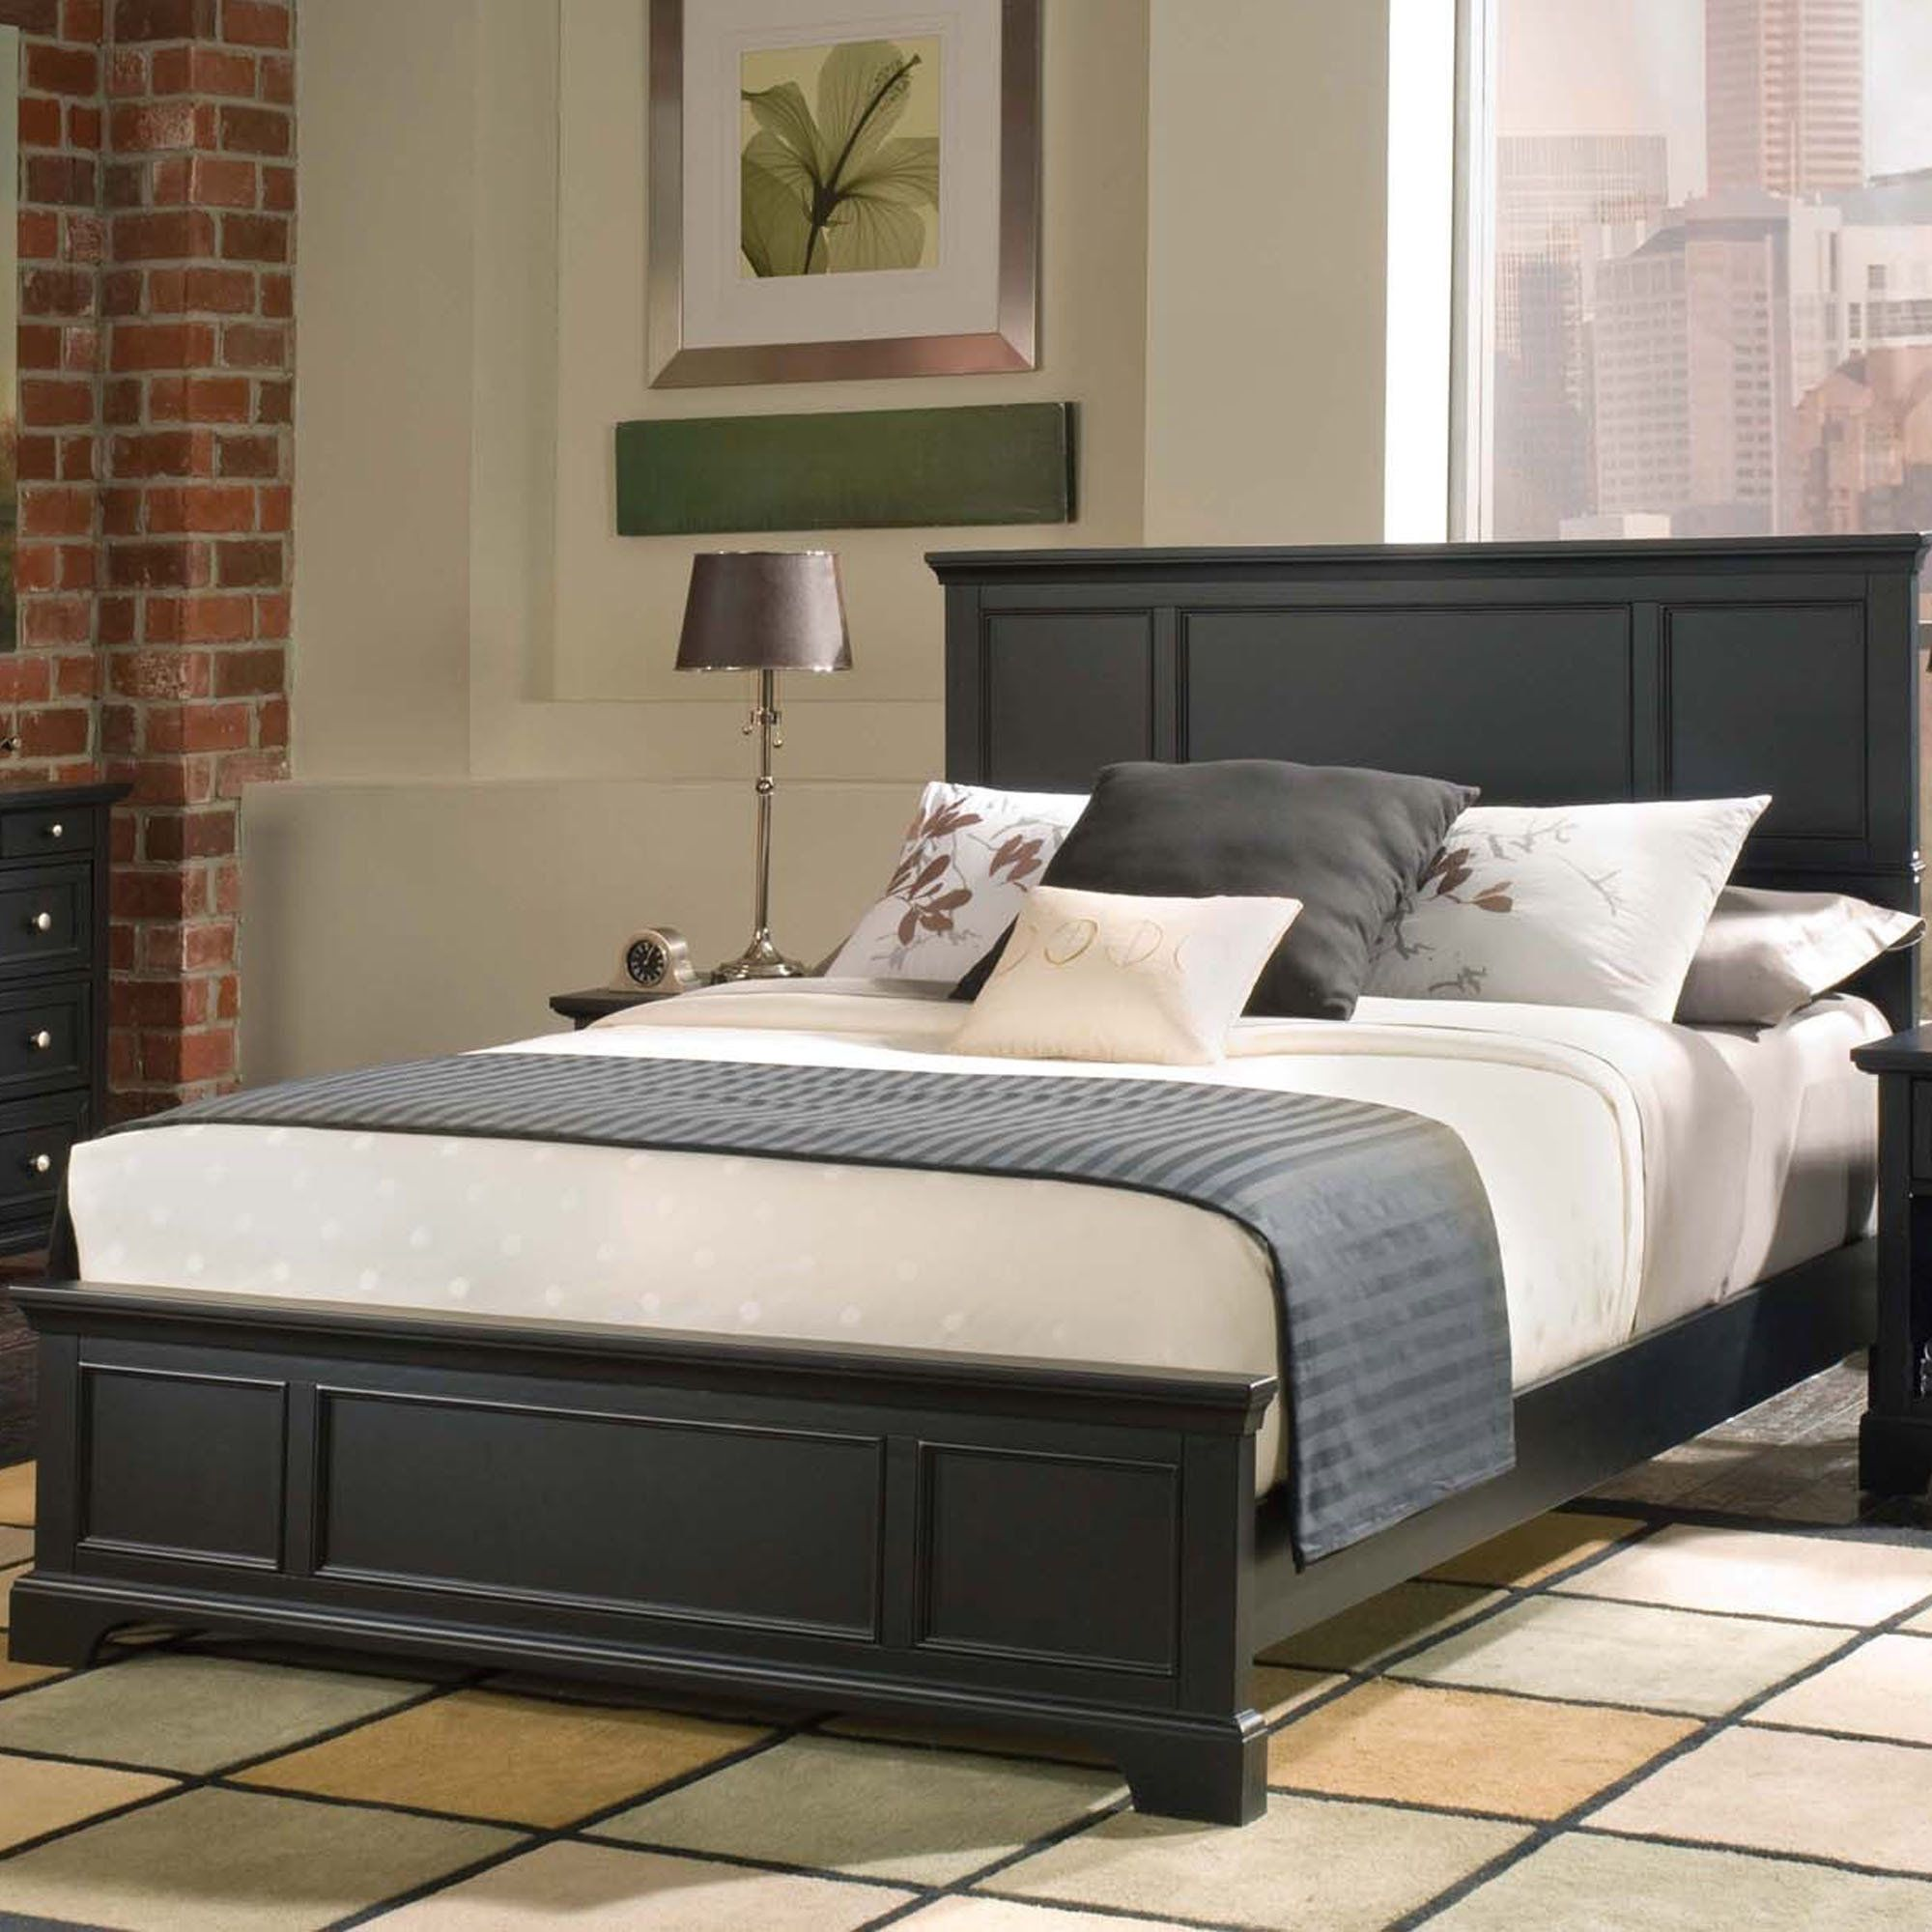 bed frame without headboard | lit | pinterest | transitional